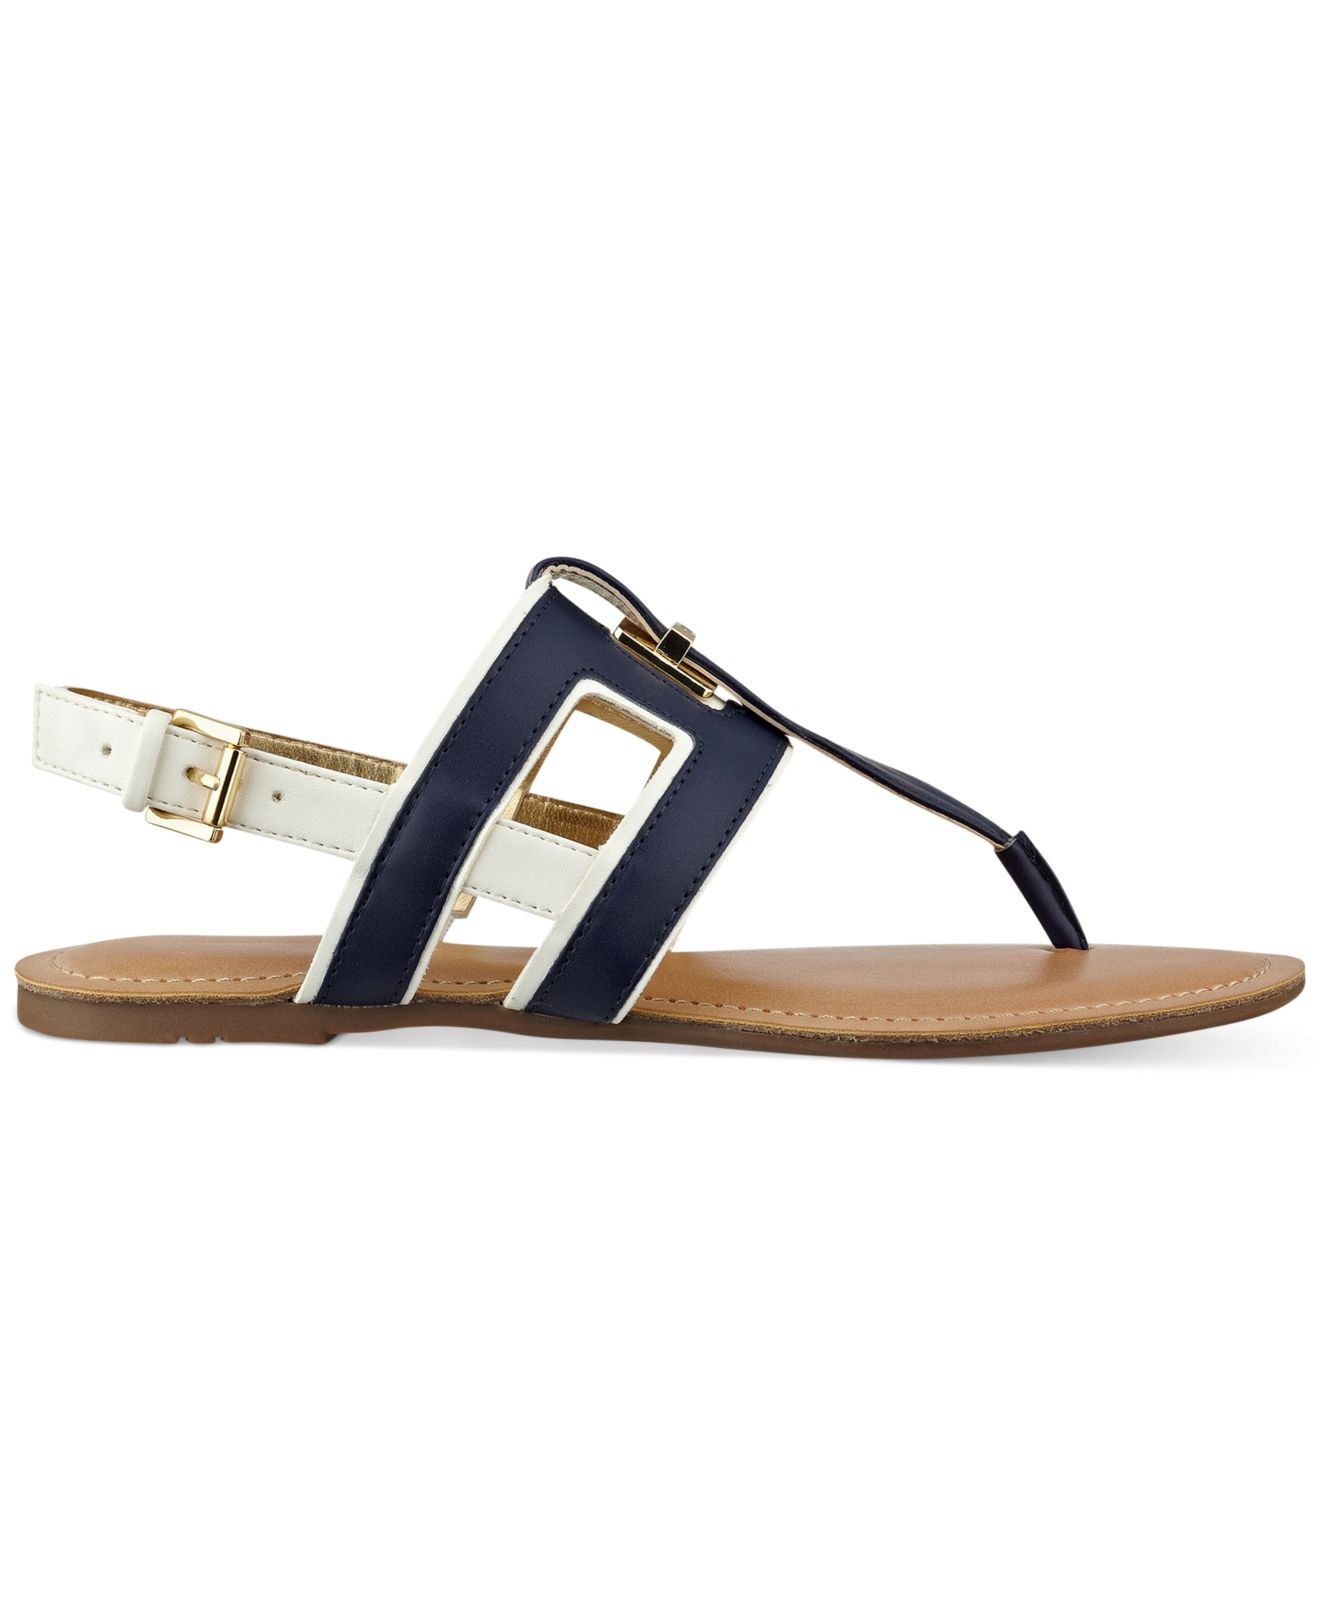 8408c9a62ce76d Lyst - Tommy Hilfiger Women S Lynnie Flat Thong Sandals in Blue